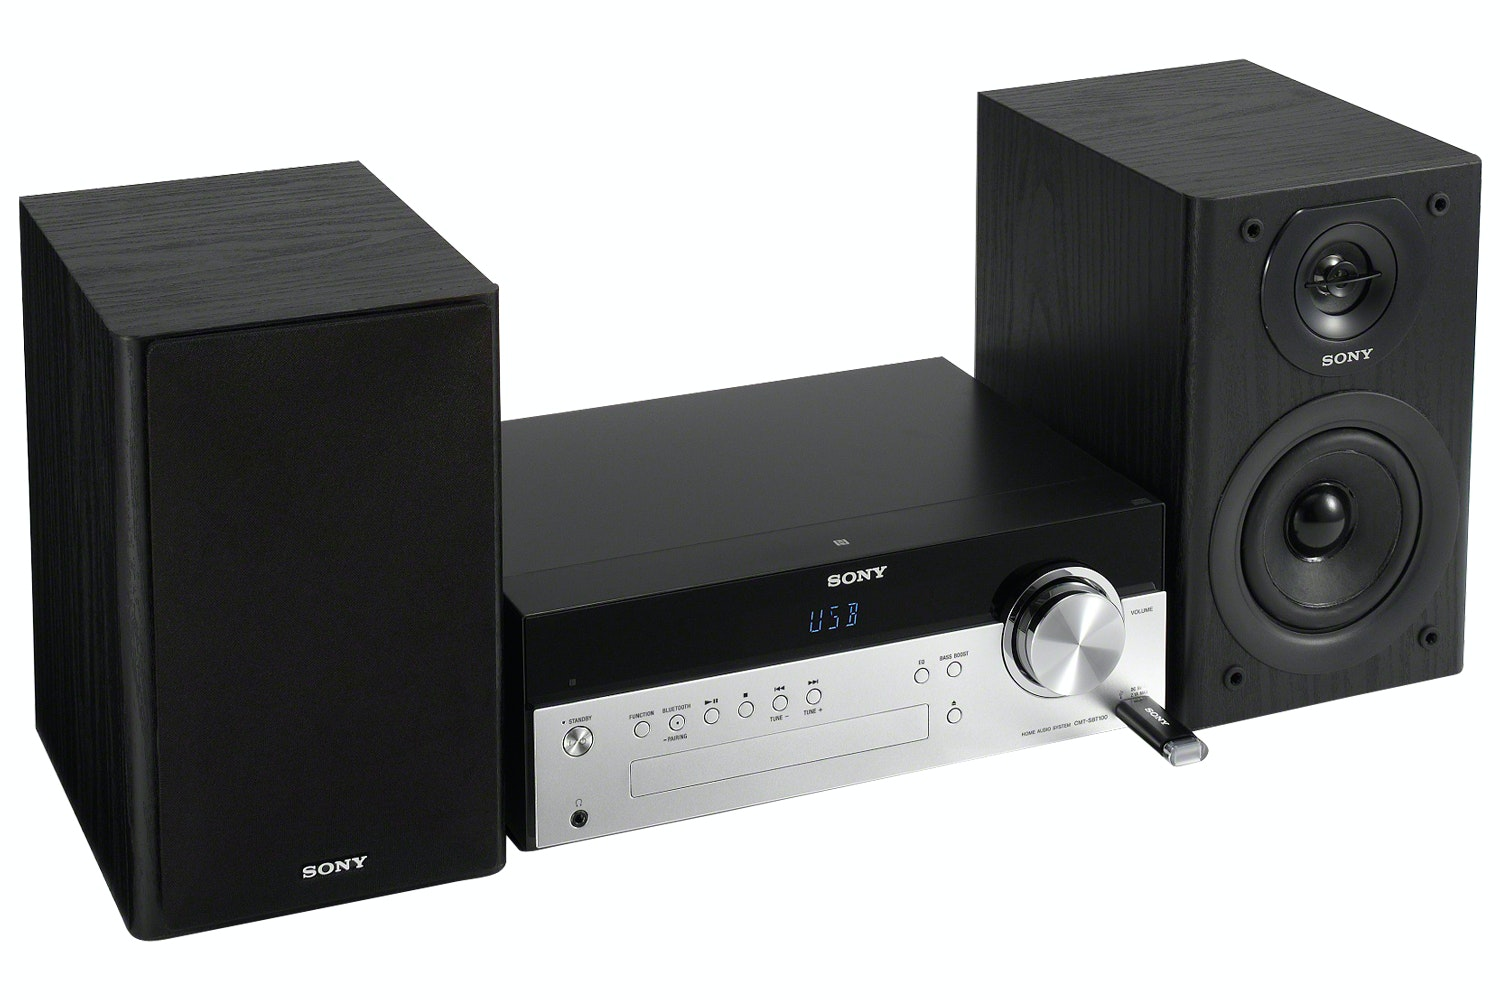 Sony CMT-SBT100B Hi-Fi System with Bluetooth | Black/Silver